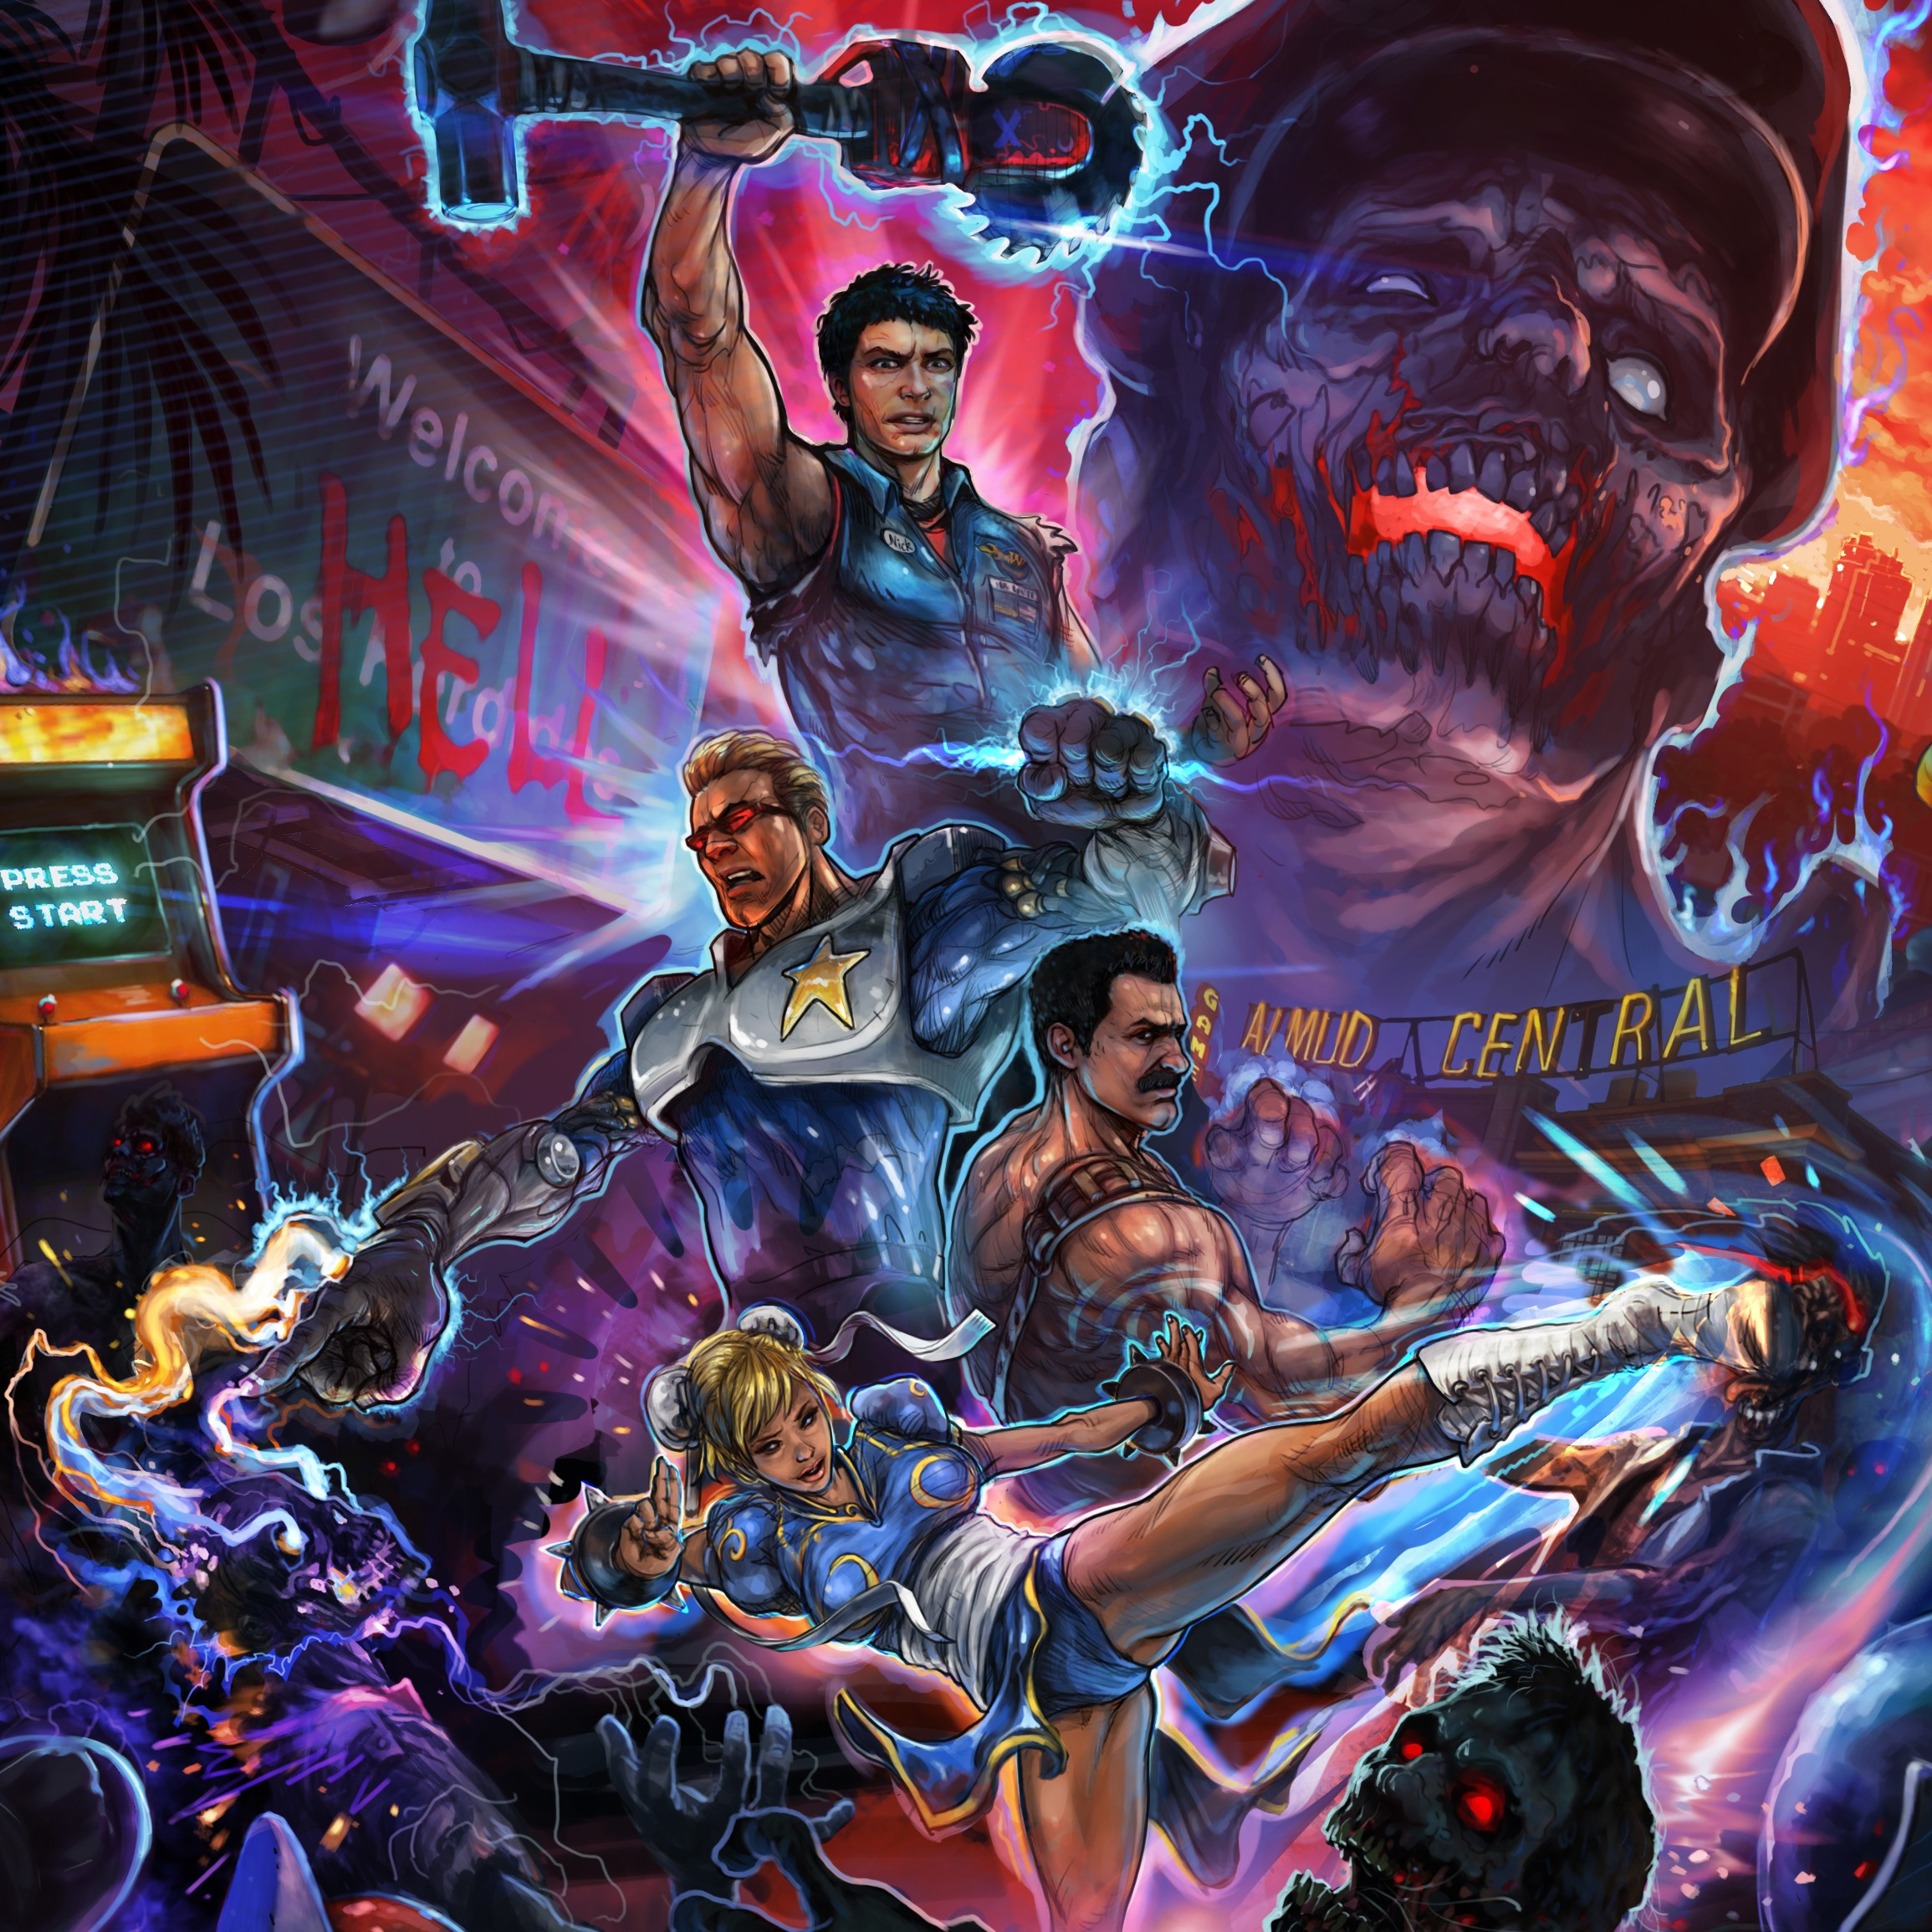 Super Ultra Dead Rising 3: Arcade Remix Hyper Edition EX + u03b1